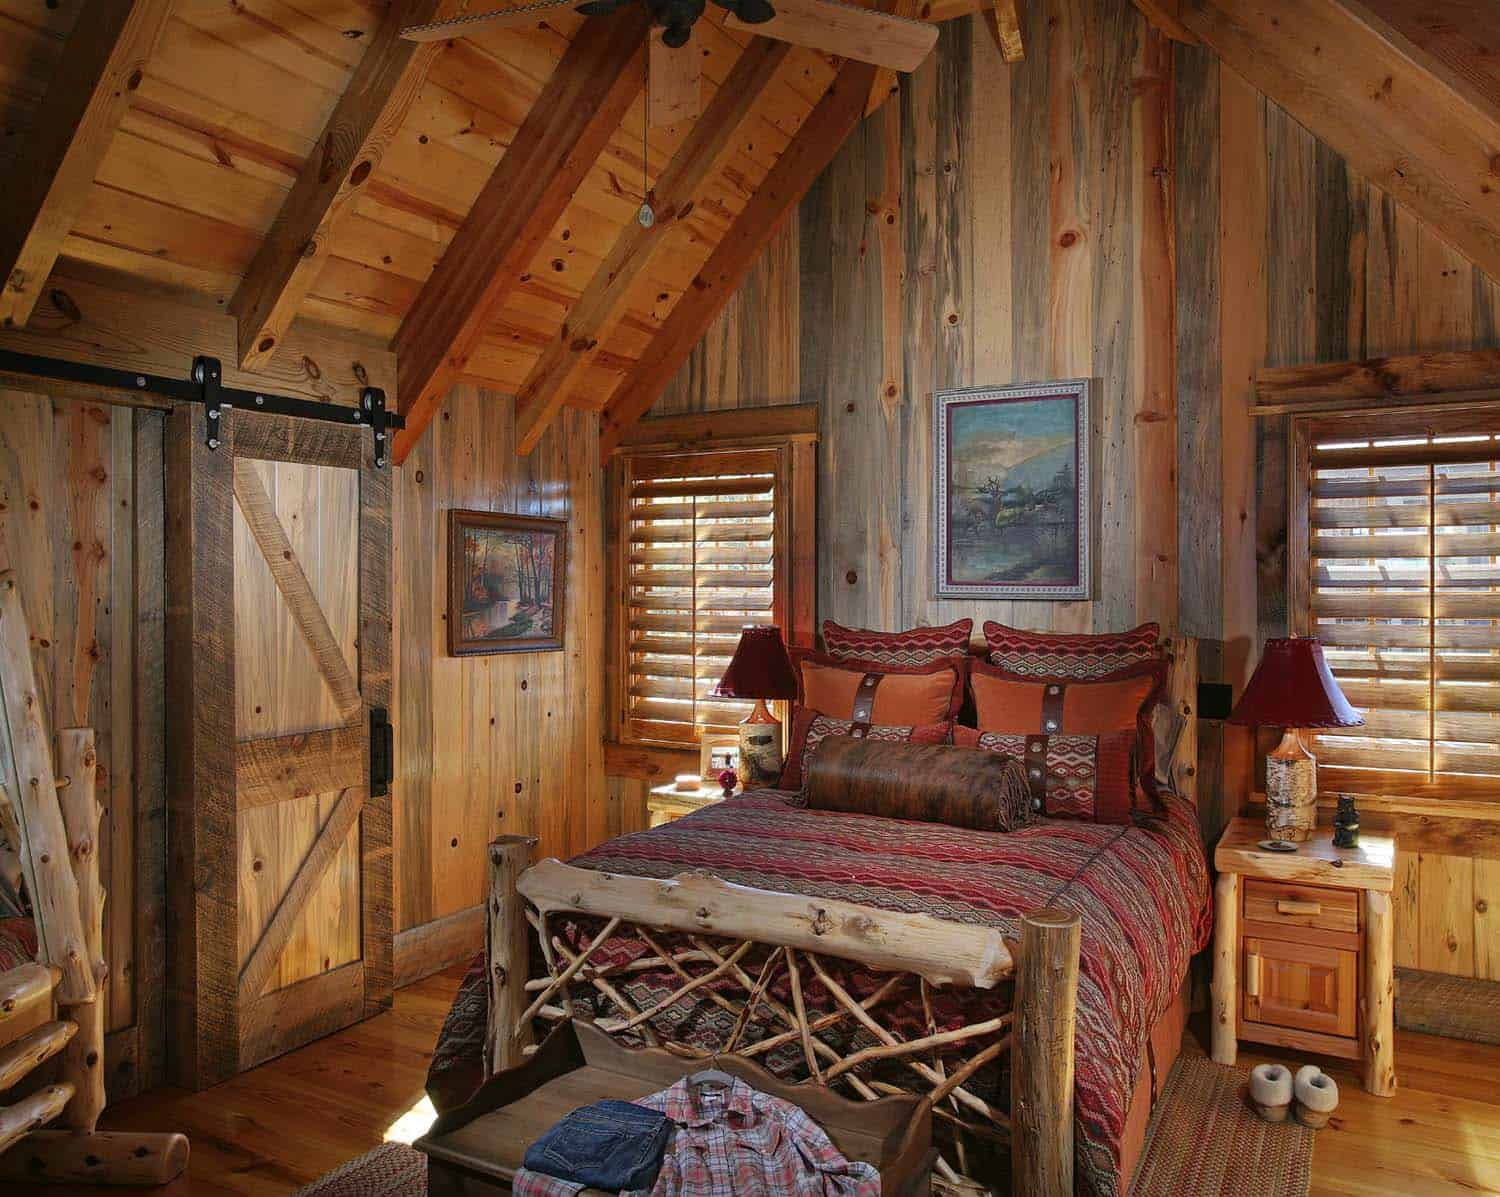 https://cdn.onekindesign.com/wp-content/uploads/2016/12/Log-Cabin-Style-Bedrooms-24-1-Kindesign.jpg